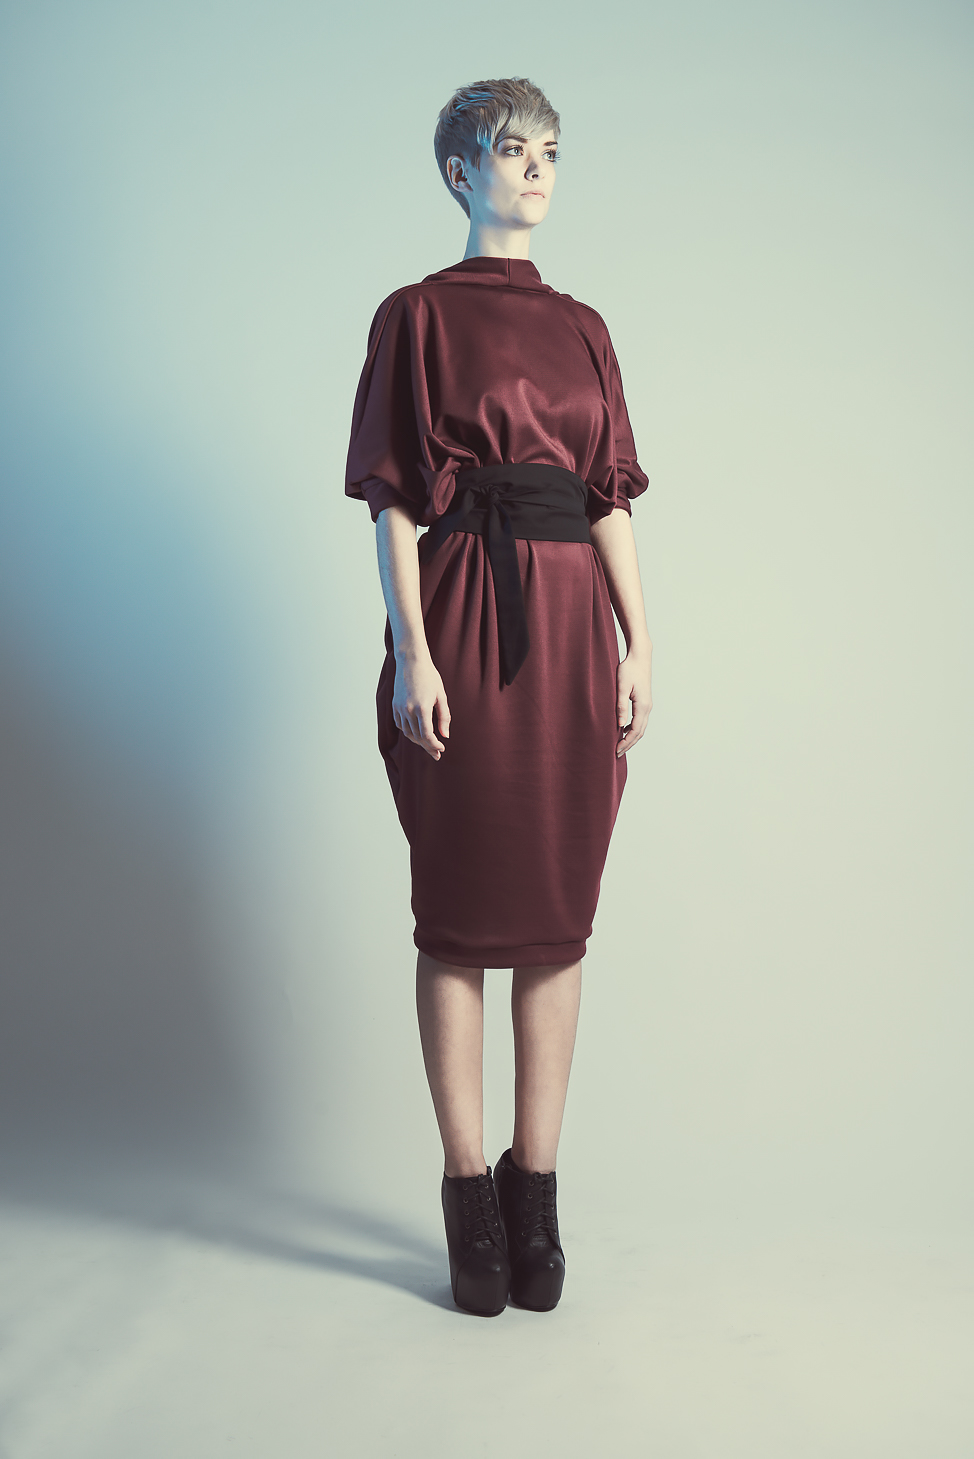 zaramia-ava-zaramiaava-leeds-fashion-designer-ethical-sustainable-tailored-minimalist-aya-burgundy-dress-obi-belt-black-versatile-drape-cowl-styling-womenswear-models-photoshoot-shrine-hairdressers-10